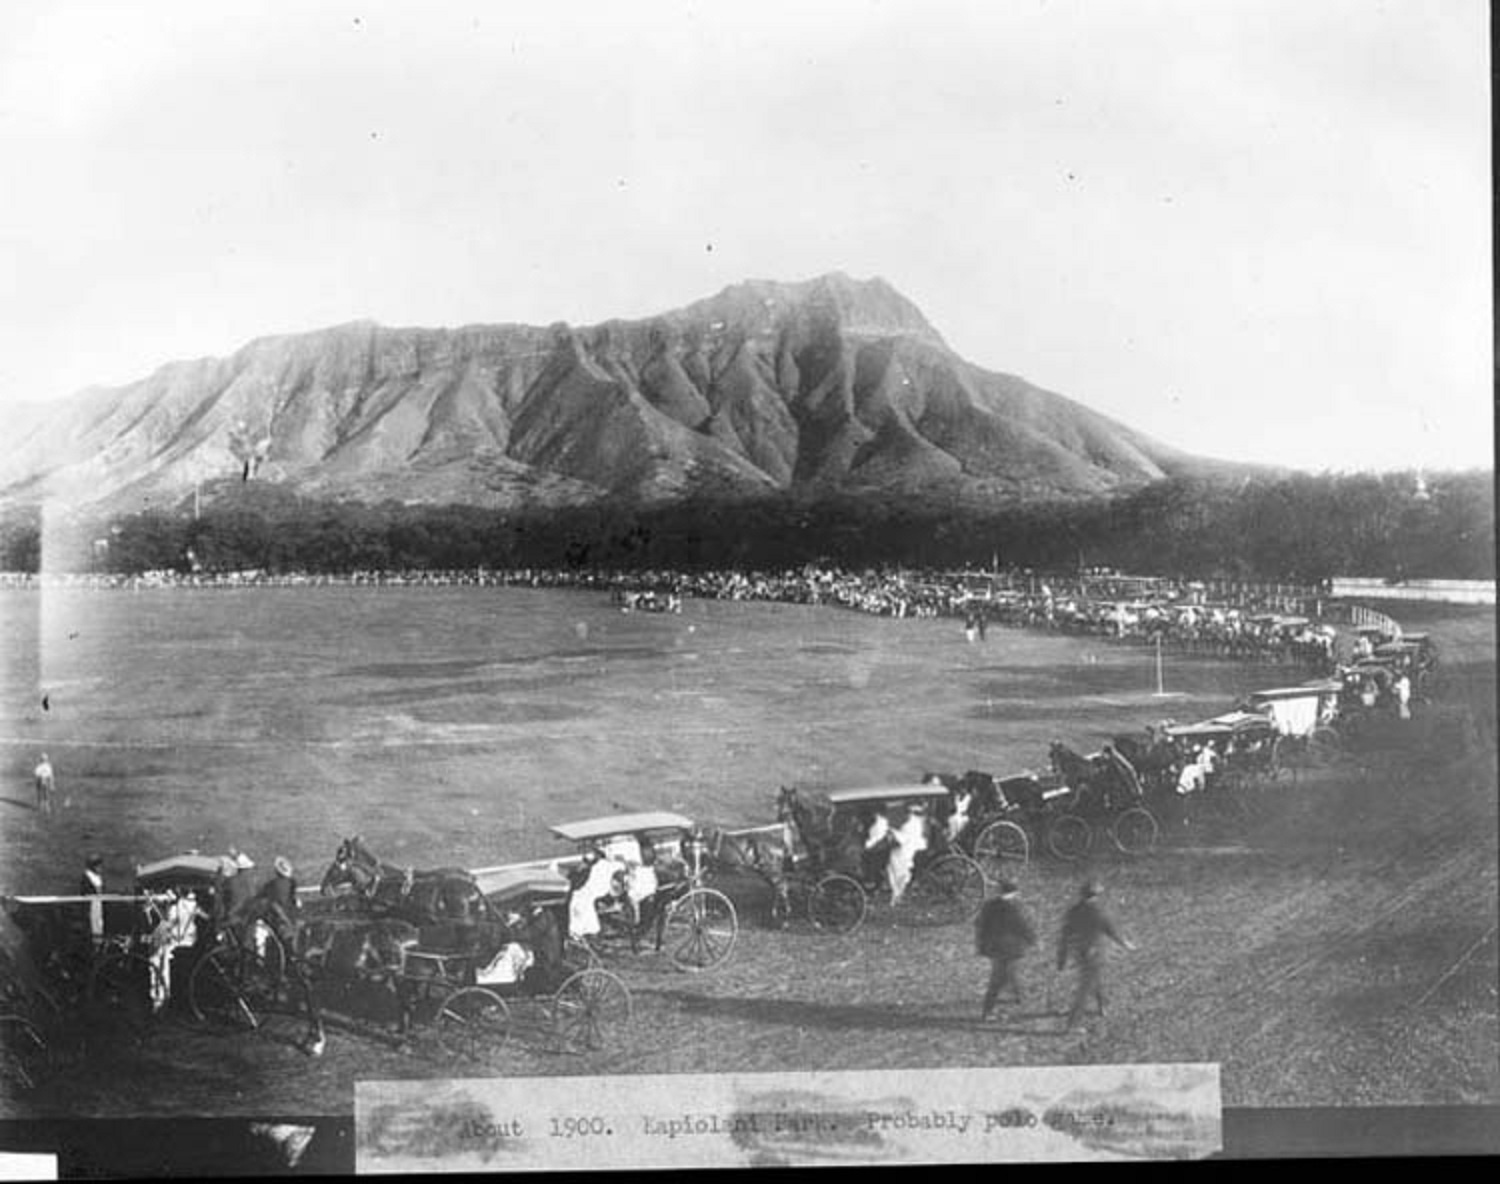 Description Kapiolani Park, polo game, c. 1900.jpg